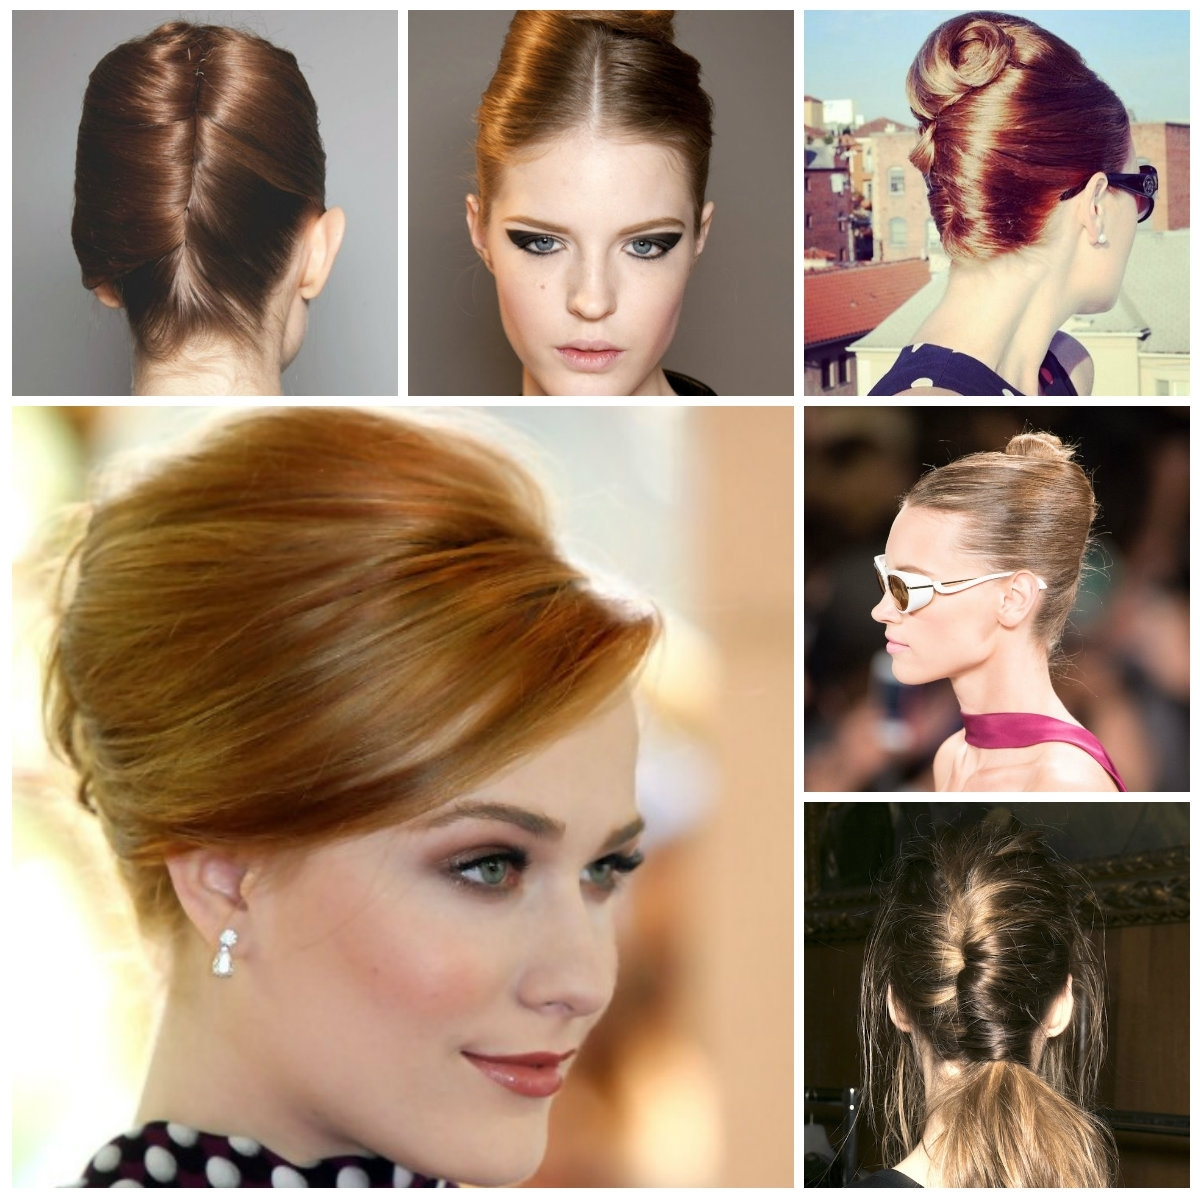 2017 Trendy French Twist Hairstyles | New Haircuts To Try For 2018 With Trendy Updo Hairstyles For Long Hair (View 6 of 15)